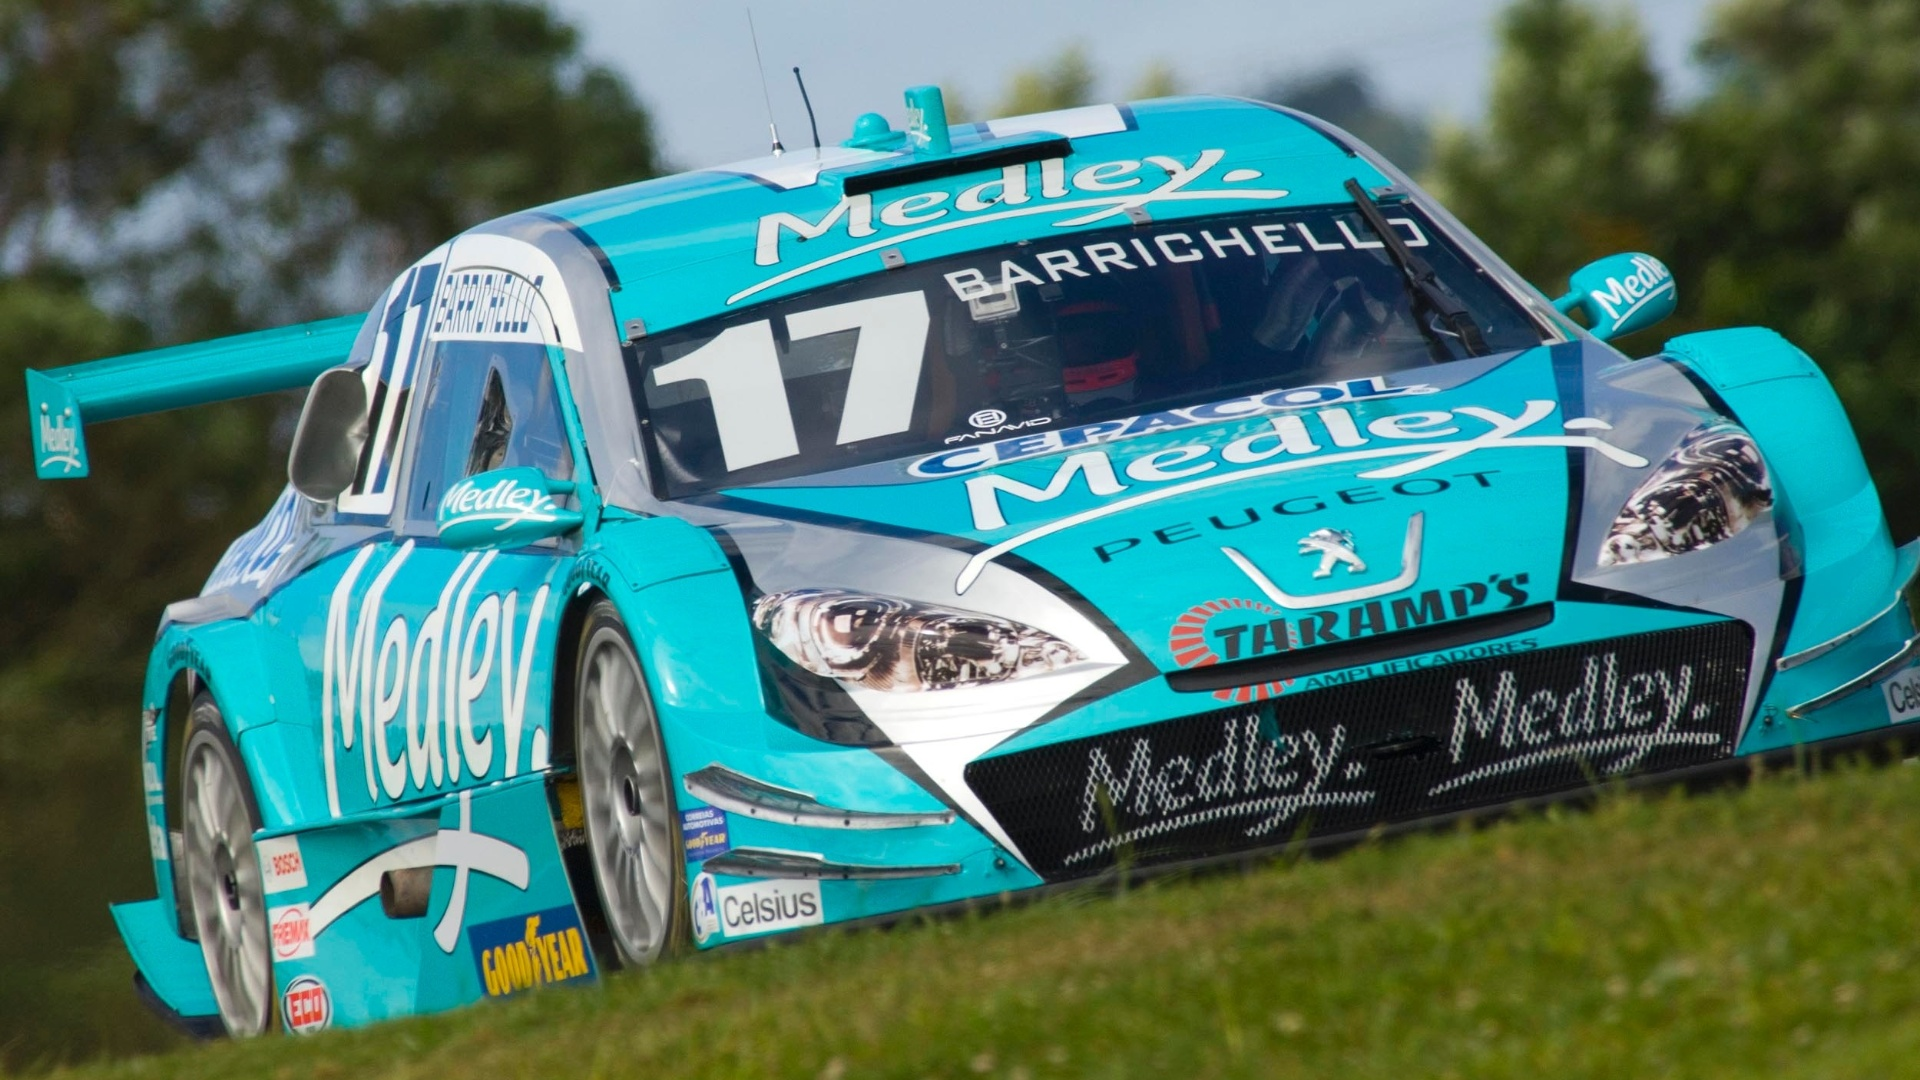 Rubens Barrichello testa carro da Stock Car no autdromo de Curitiba